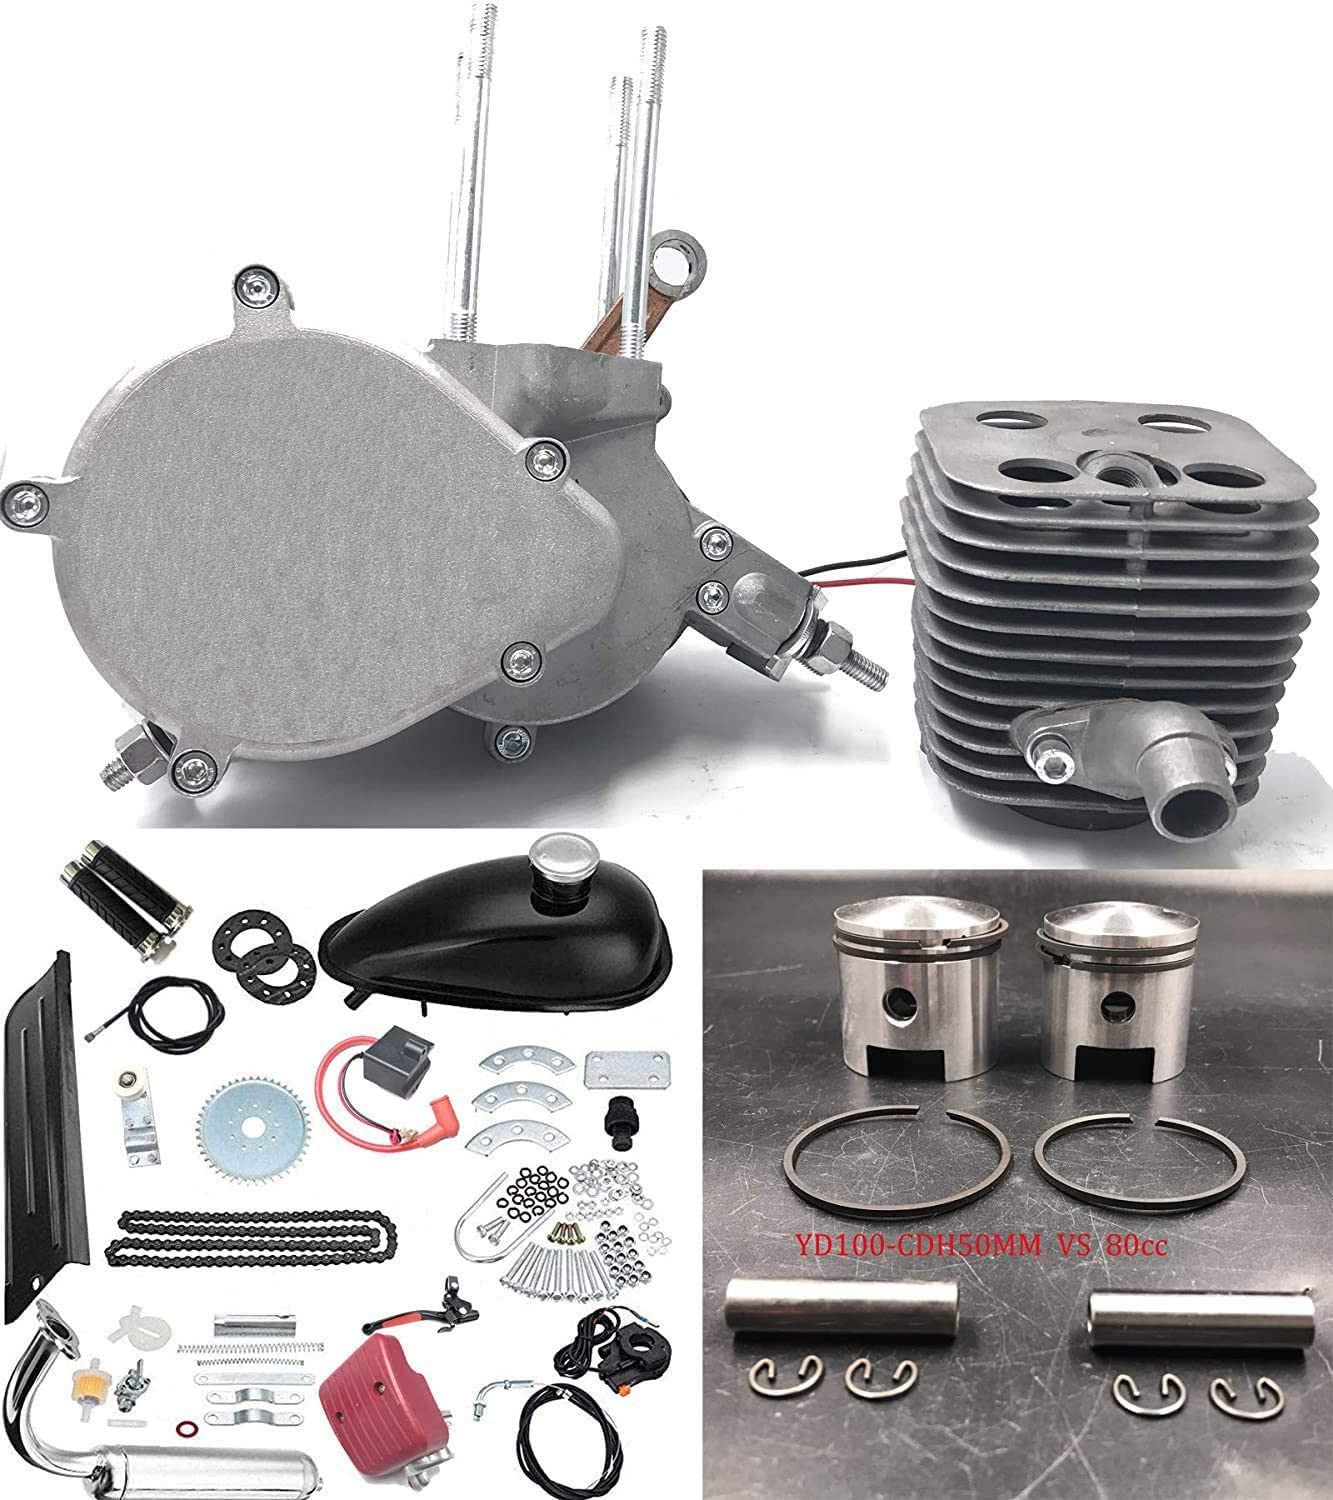 CDHPOWER 2 Stroke PK80 Gas Bicycle Engine Adapter Parts Set-66cc//80cc Spare Parts-Gas Motorized Bicycle